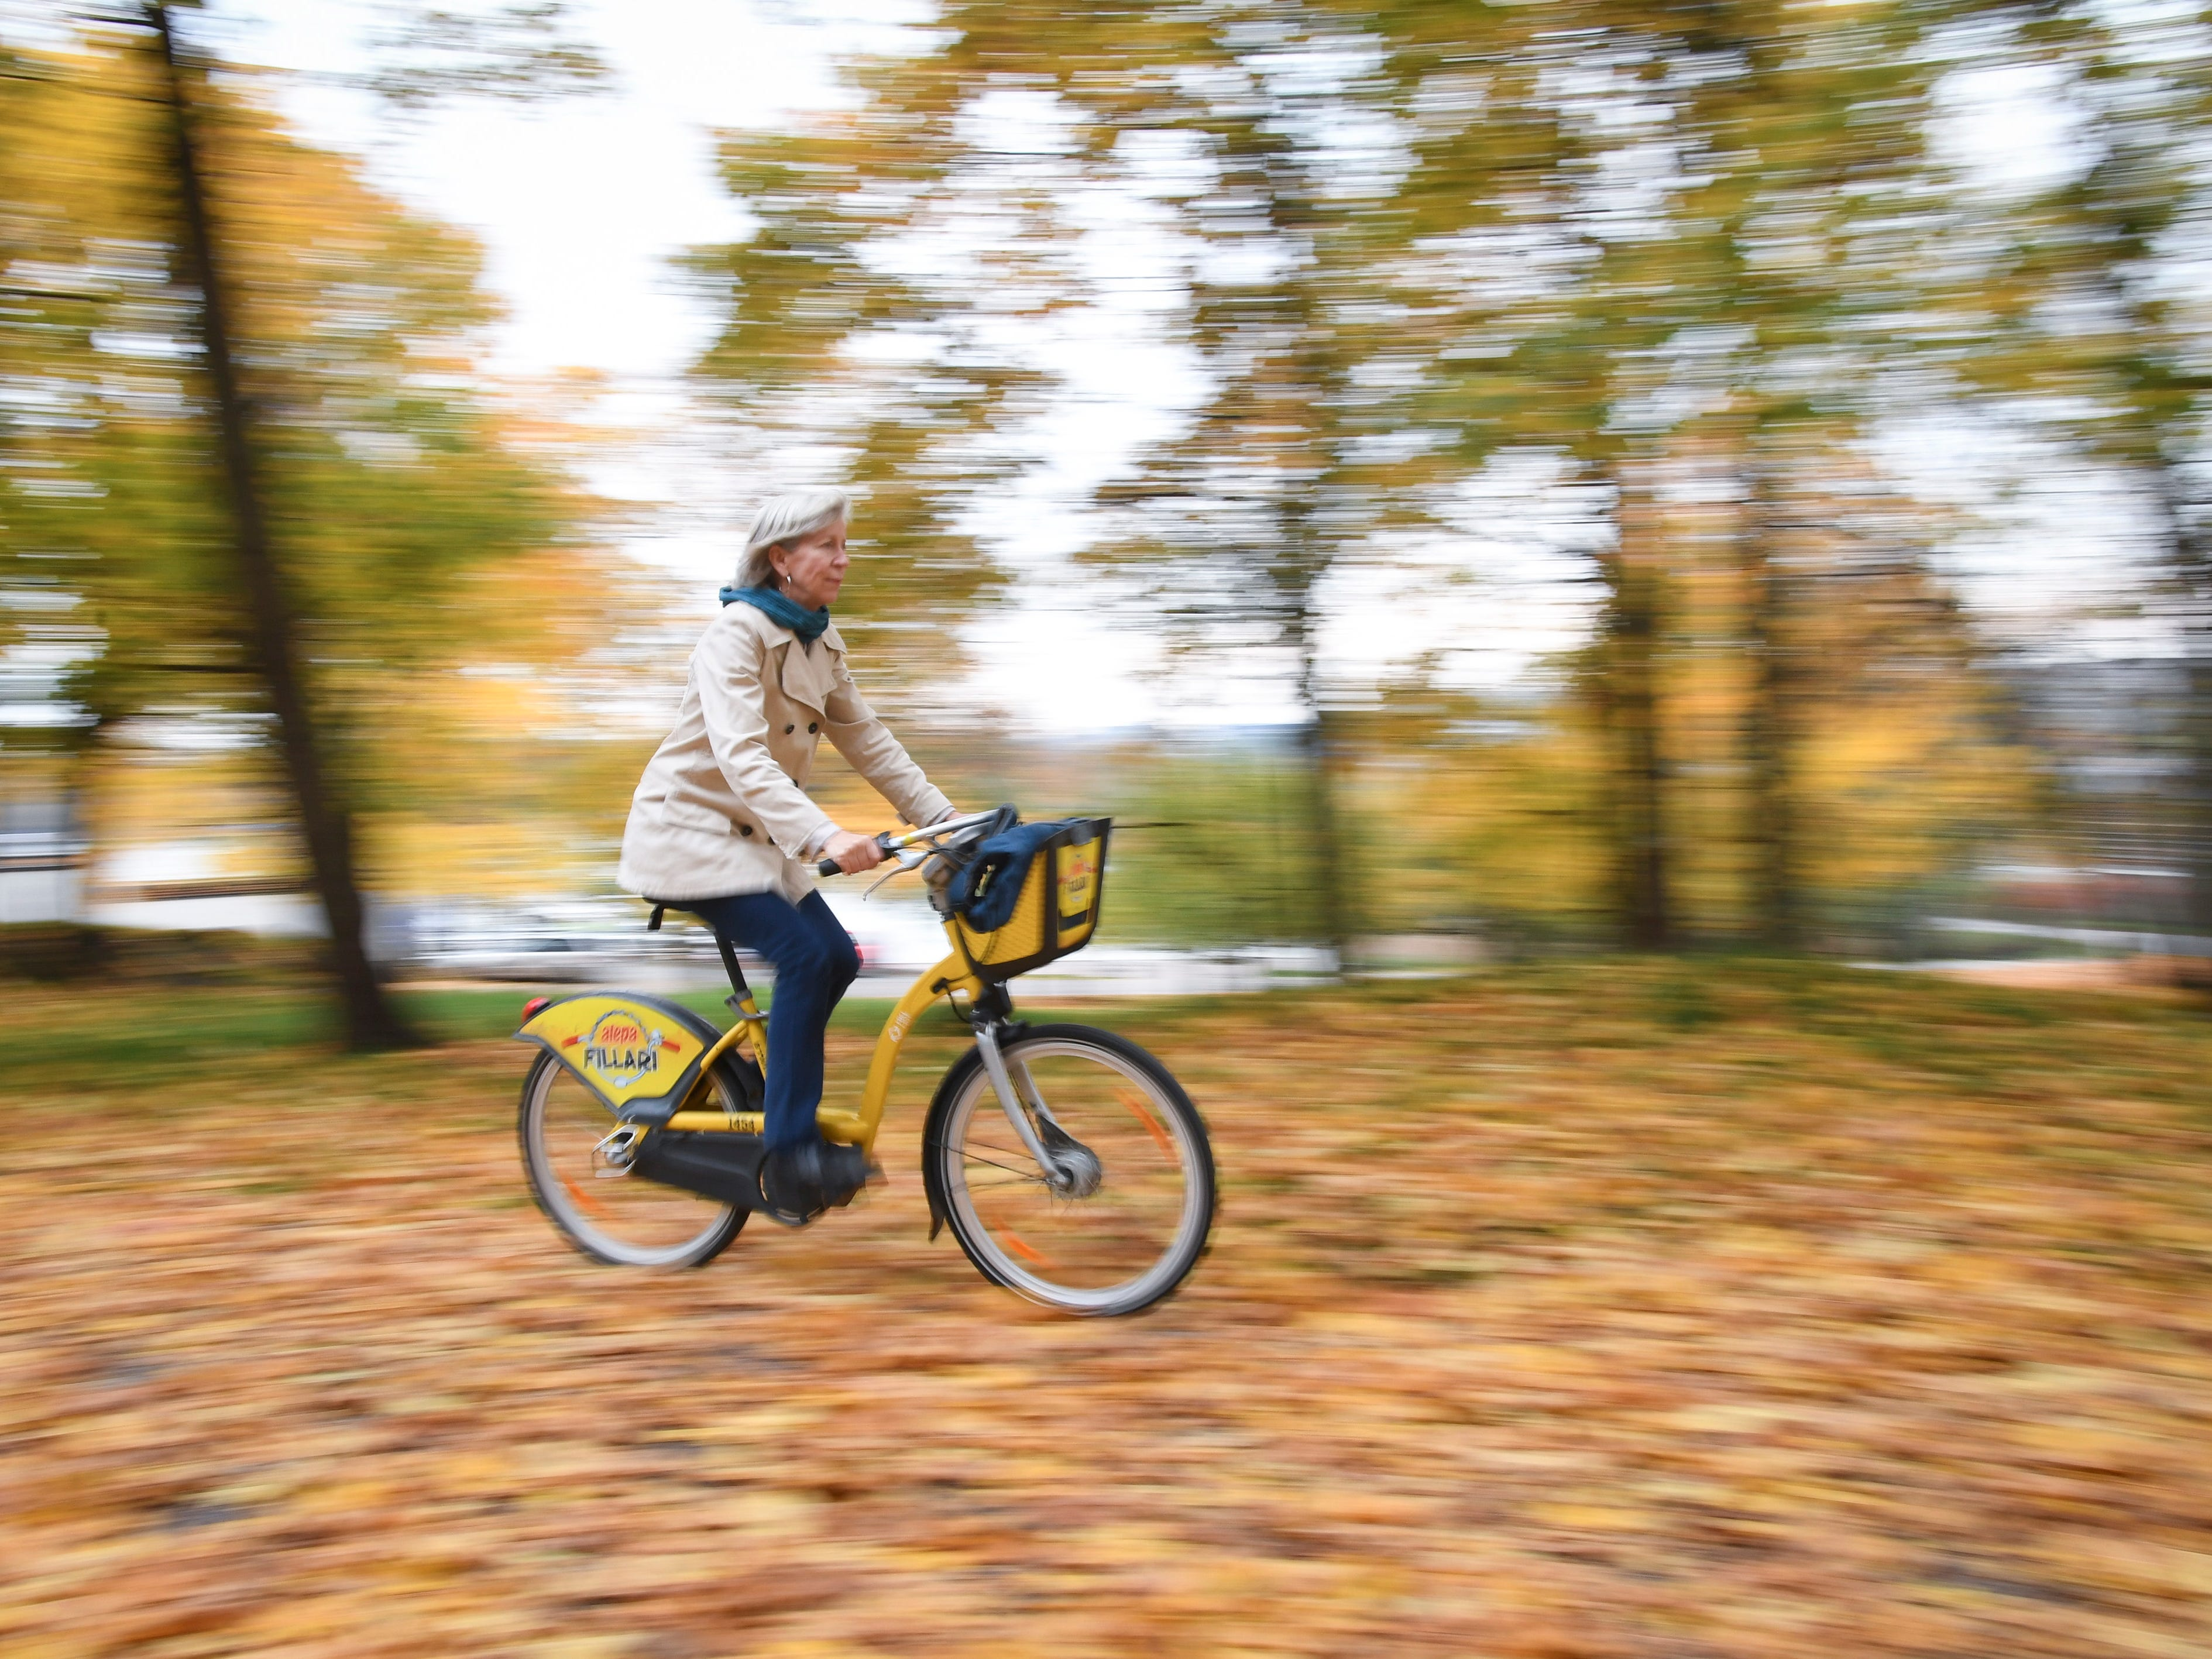 A woman rides her bicycle on a path covered with autumnal colored leaves in a local park in Helsinki, Finland, Oct. 16, 2018.